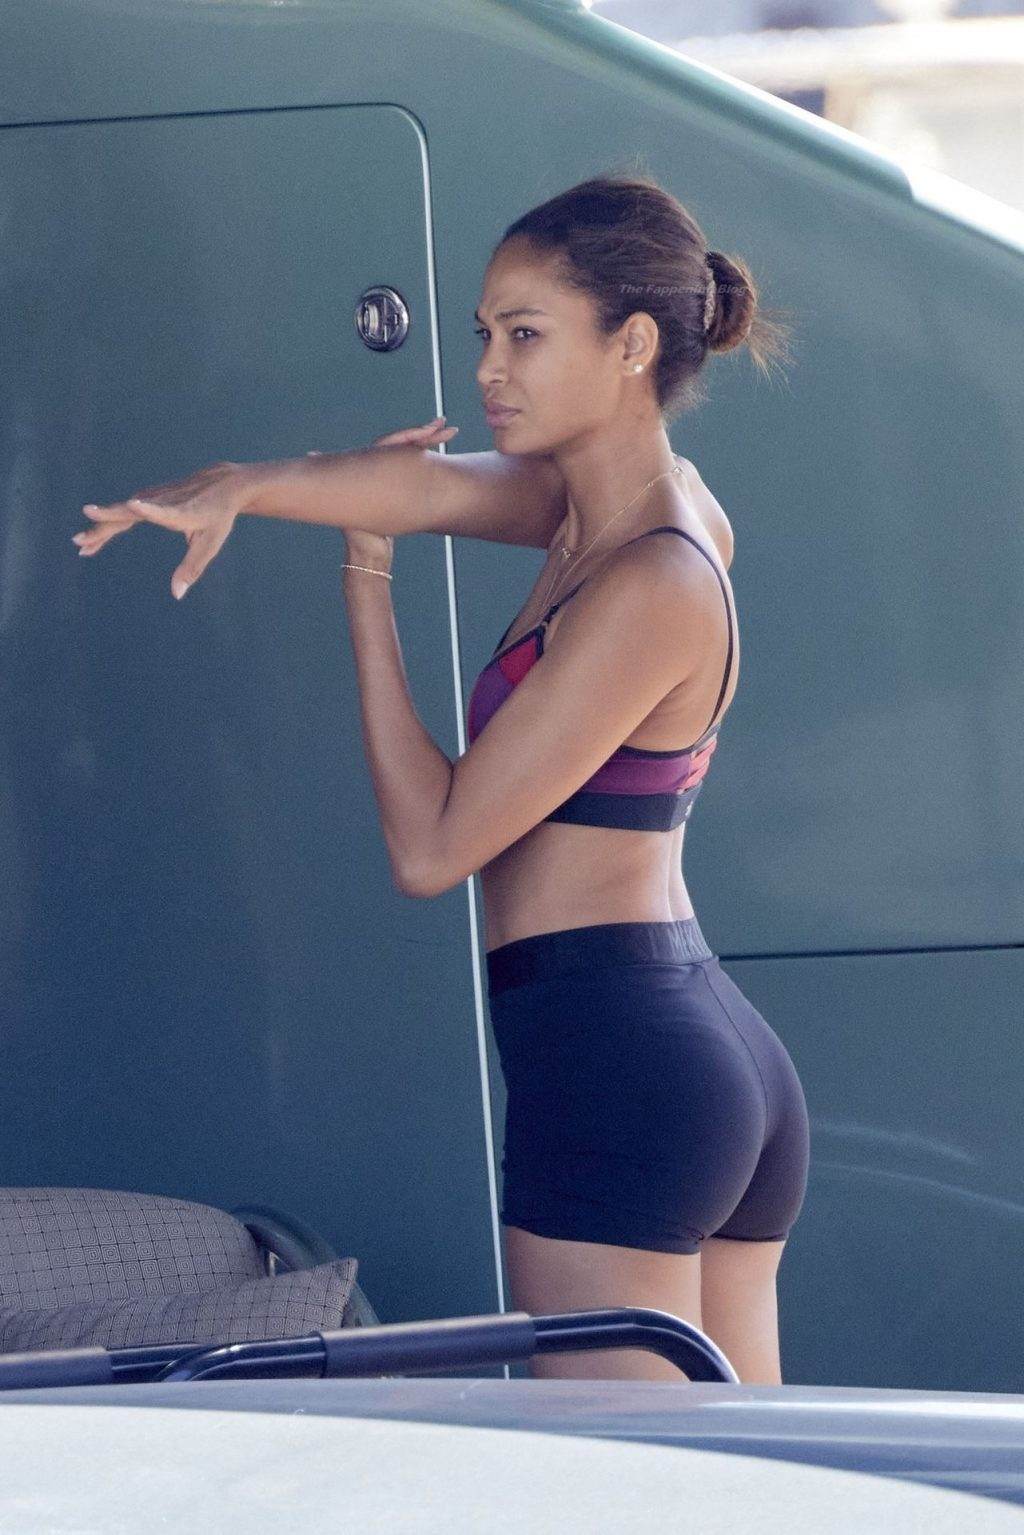 Joan Smalls & Henry Junior Work Out Together on Their Boat in the Port of Saint-Tropez (28 Photos)